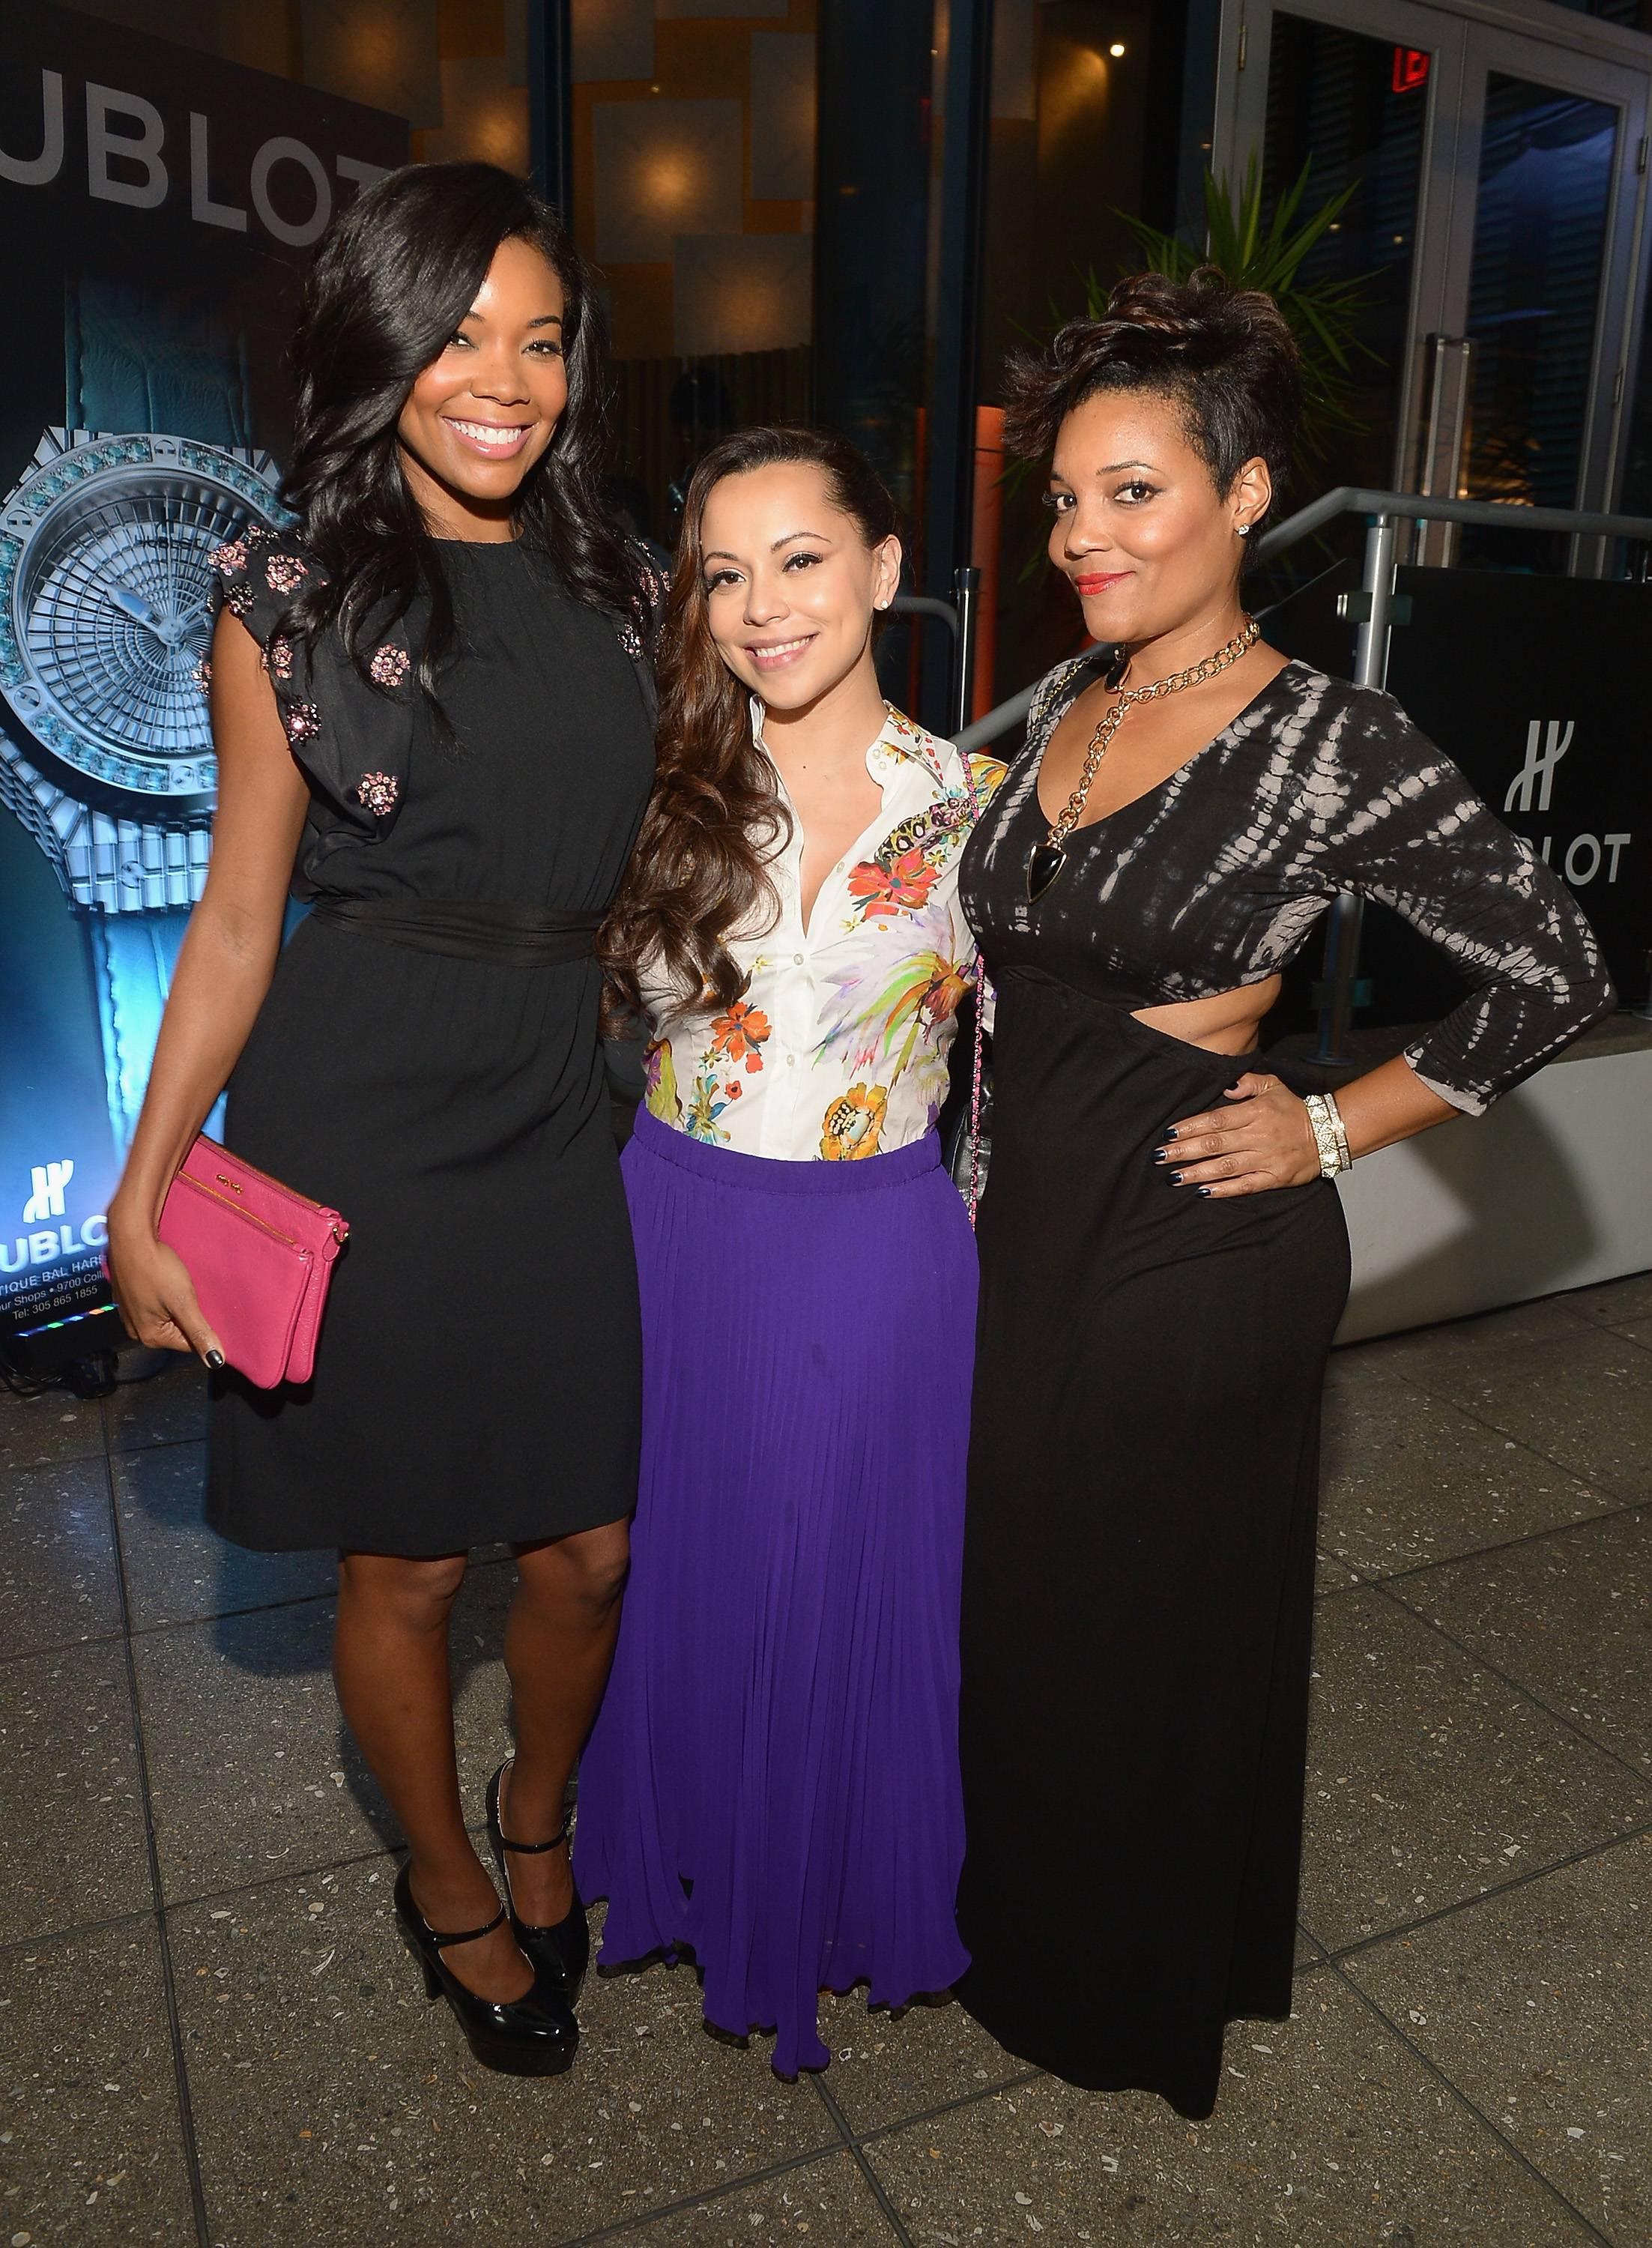 Gabrielle Union,Adrienne Bosh and Amaris Jones